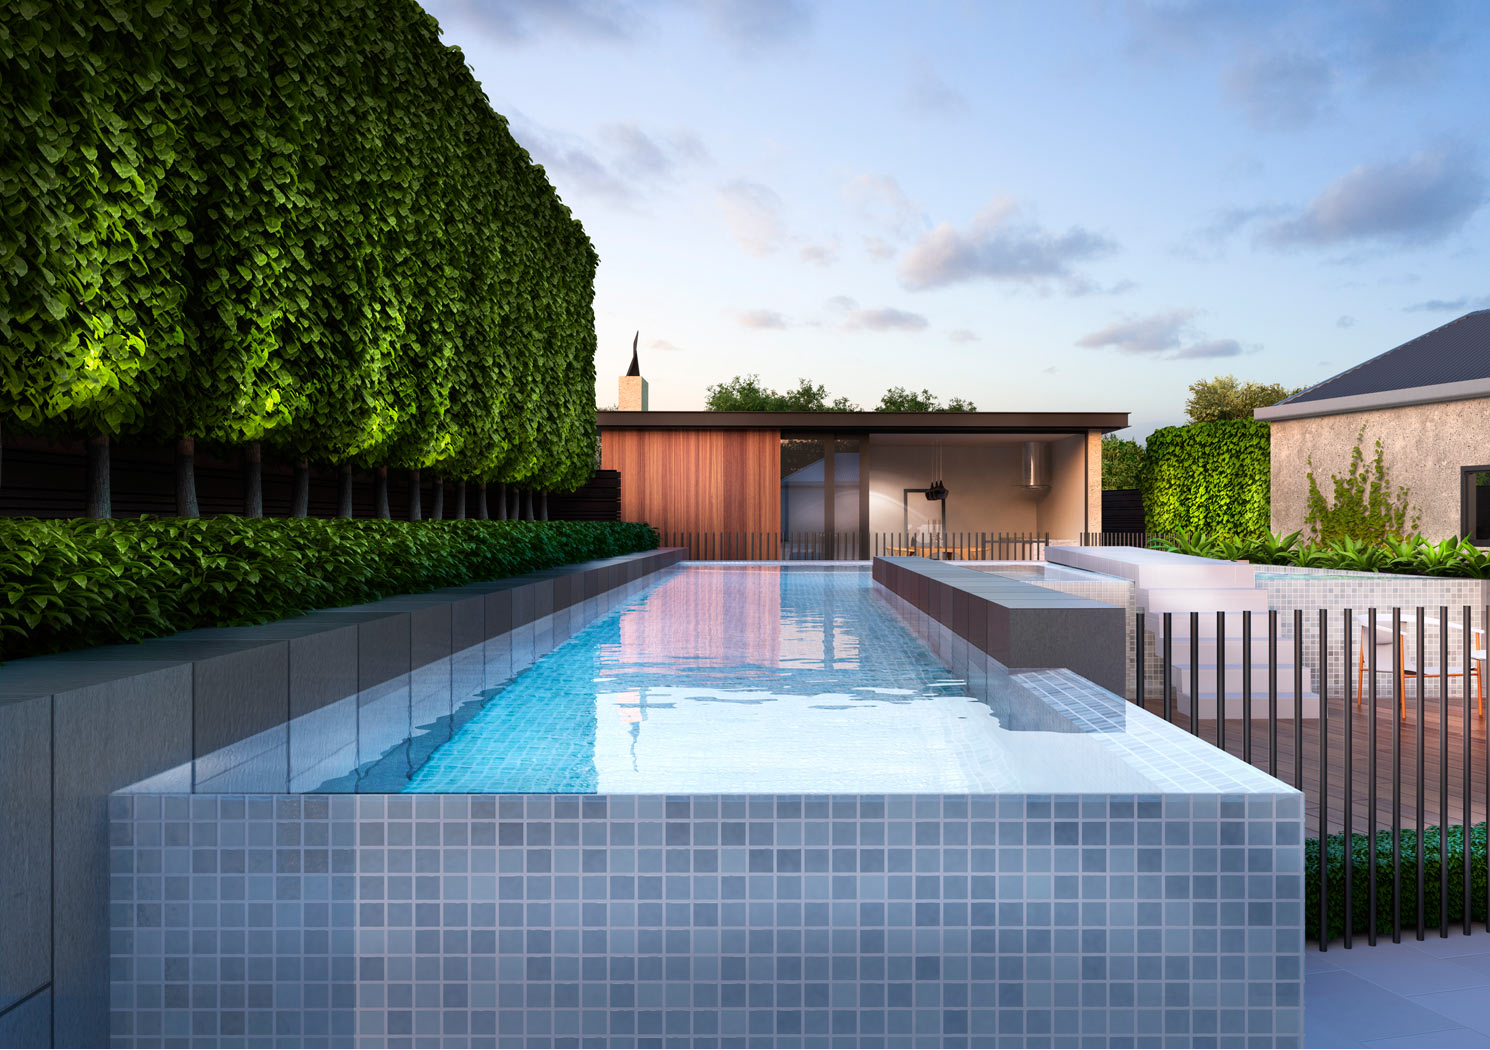 Landscape design melbourne nathan burkett design for Landscape design melbourne